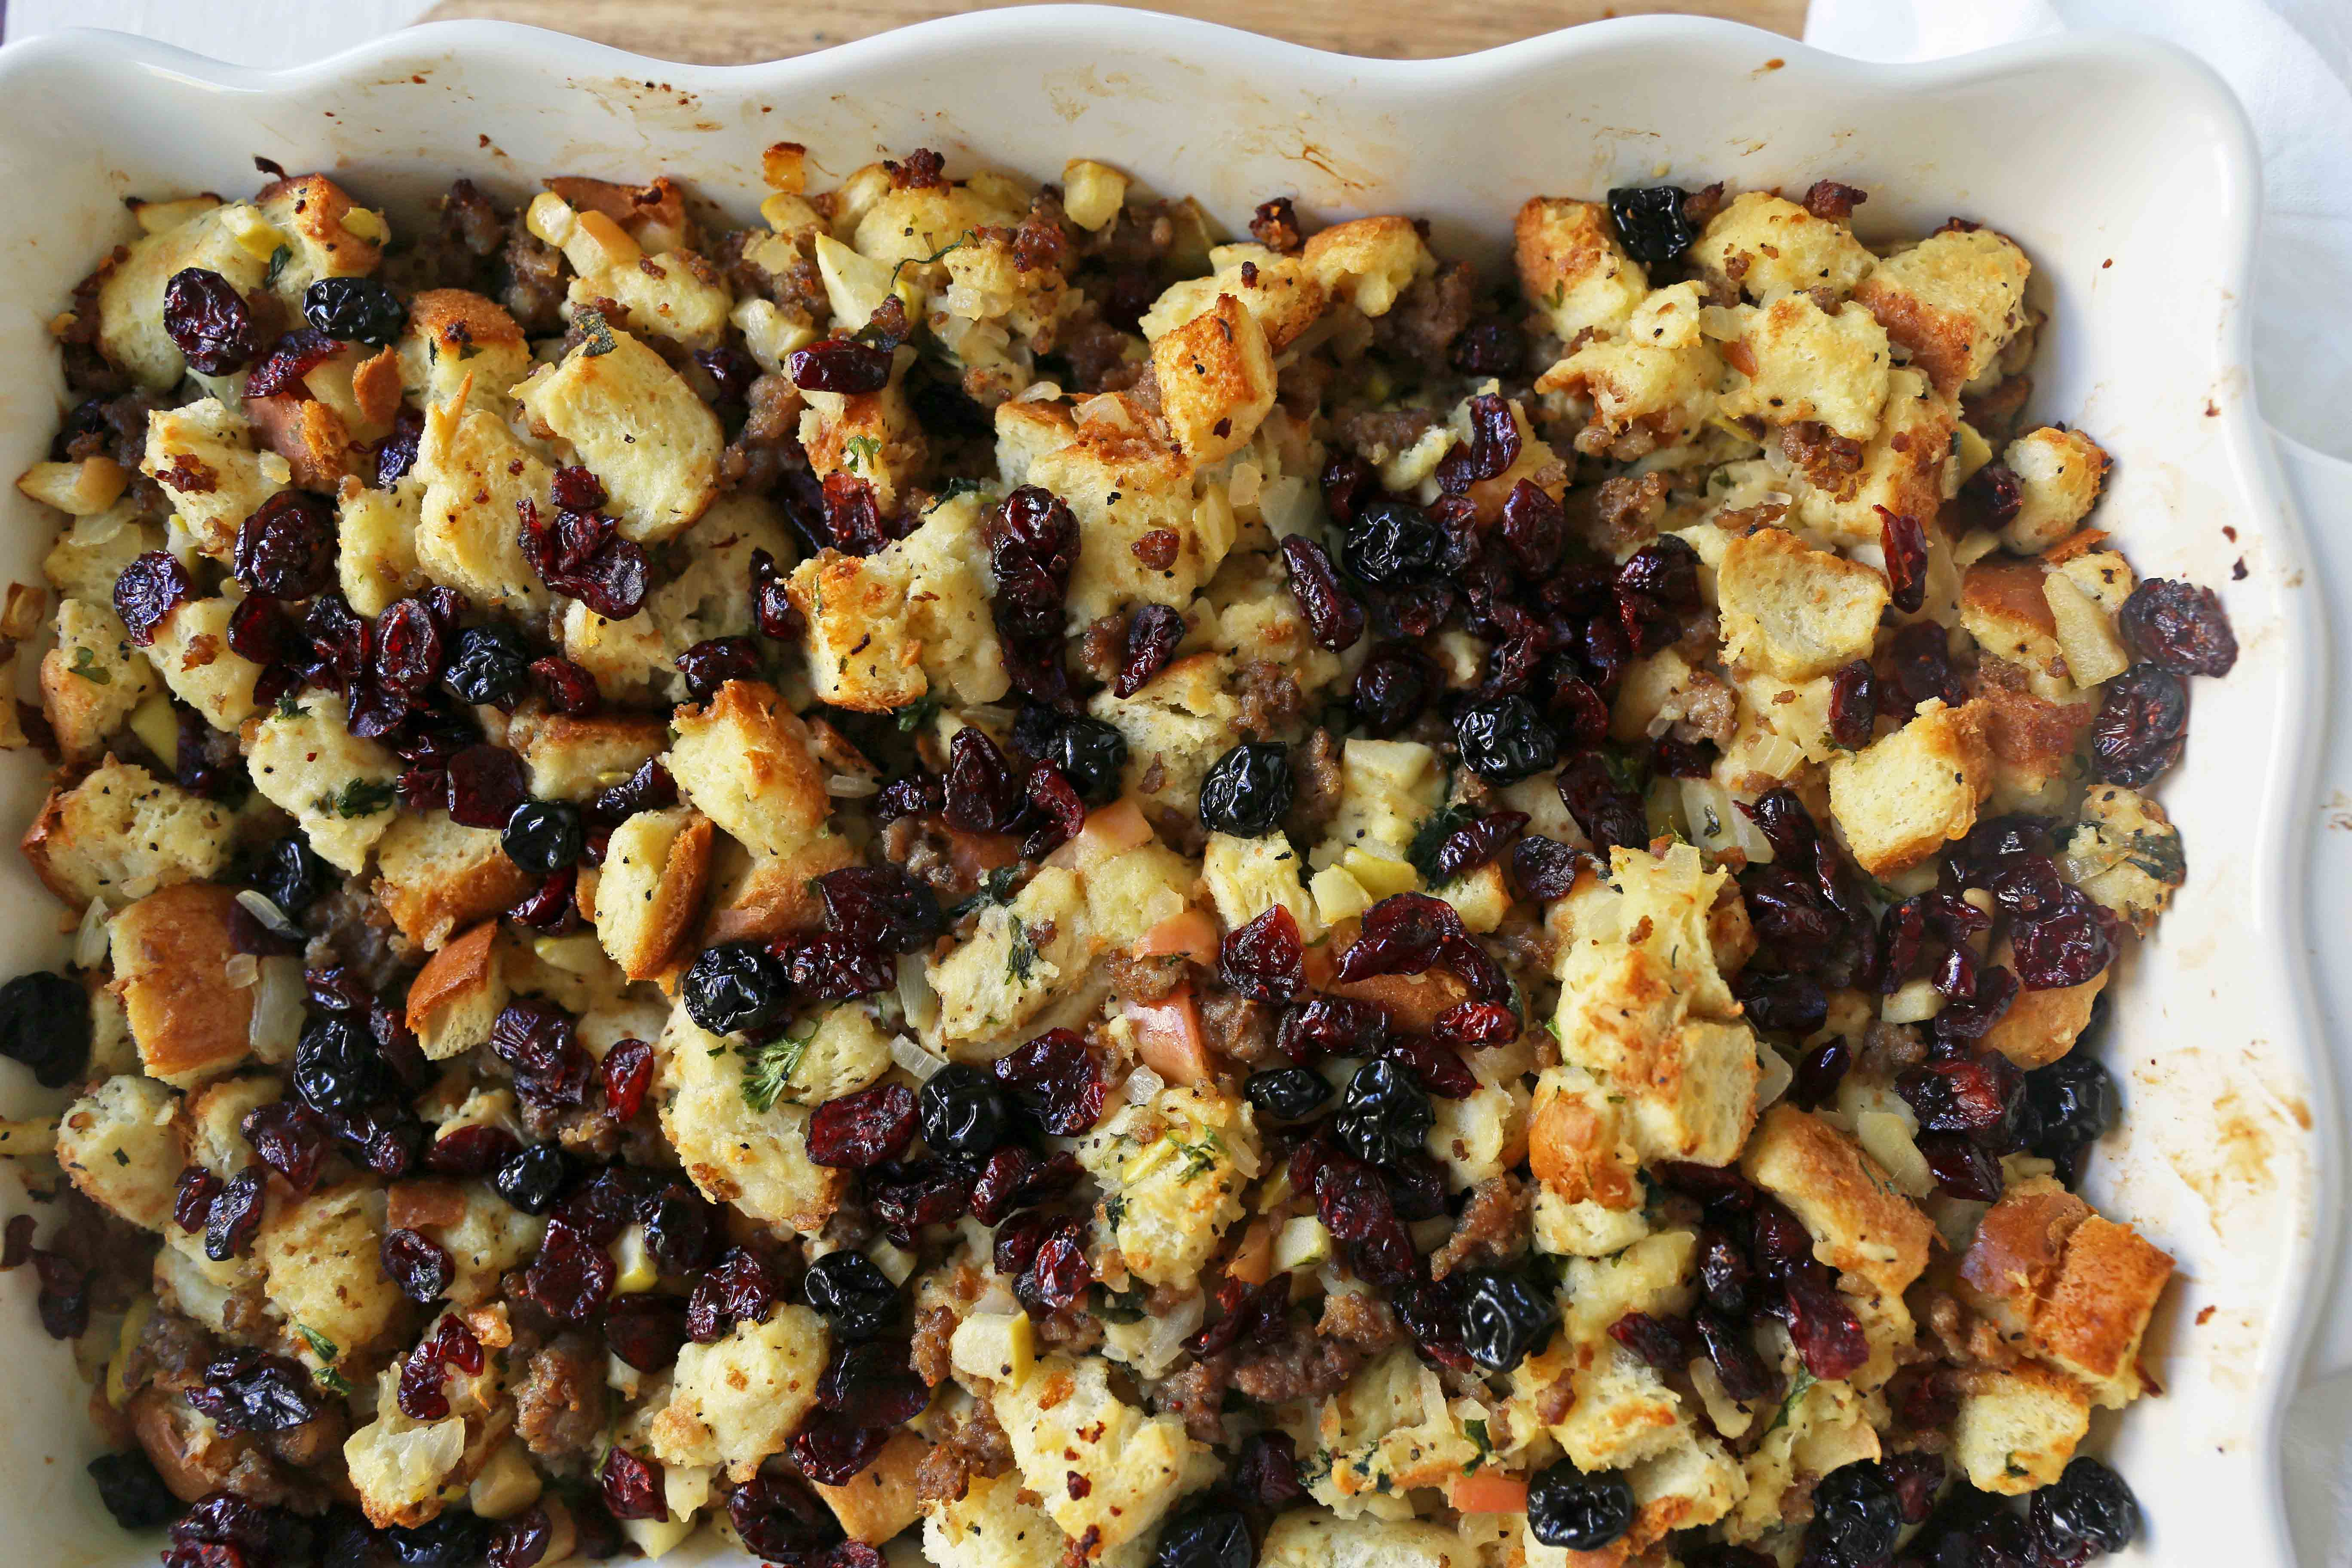 Cranberry Apple Sausage Stuffing. A classic Thanksgiving side dish that is a real crowd pleaser! Homemade Sausage Cranberry Apple Stuffing Recipe. www.modernhoney.com #stuffing #sausasgestuffing #cranberryapplestuffing #sausageapplestuffing #thanksgiving #thanksgivingsides